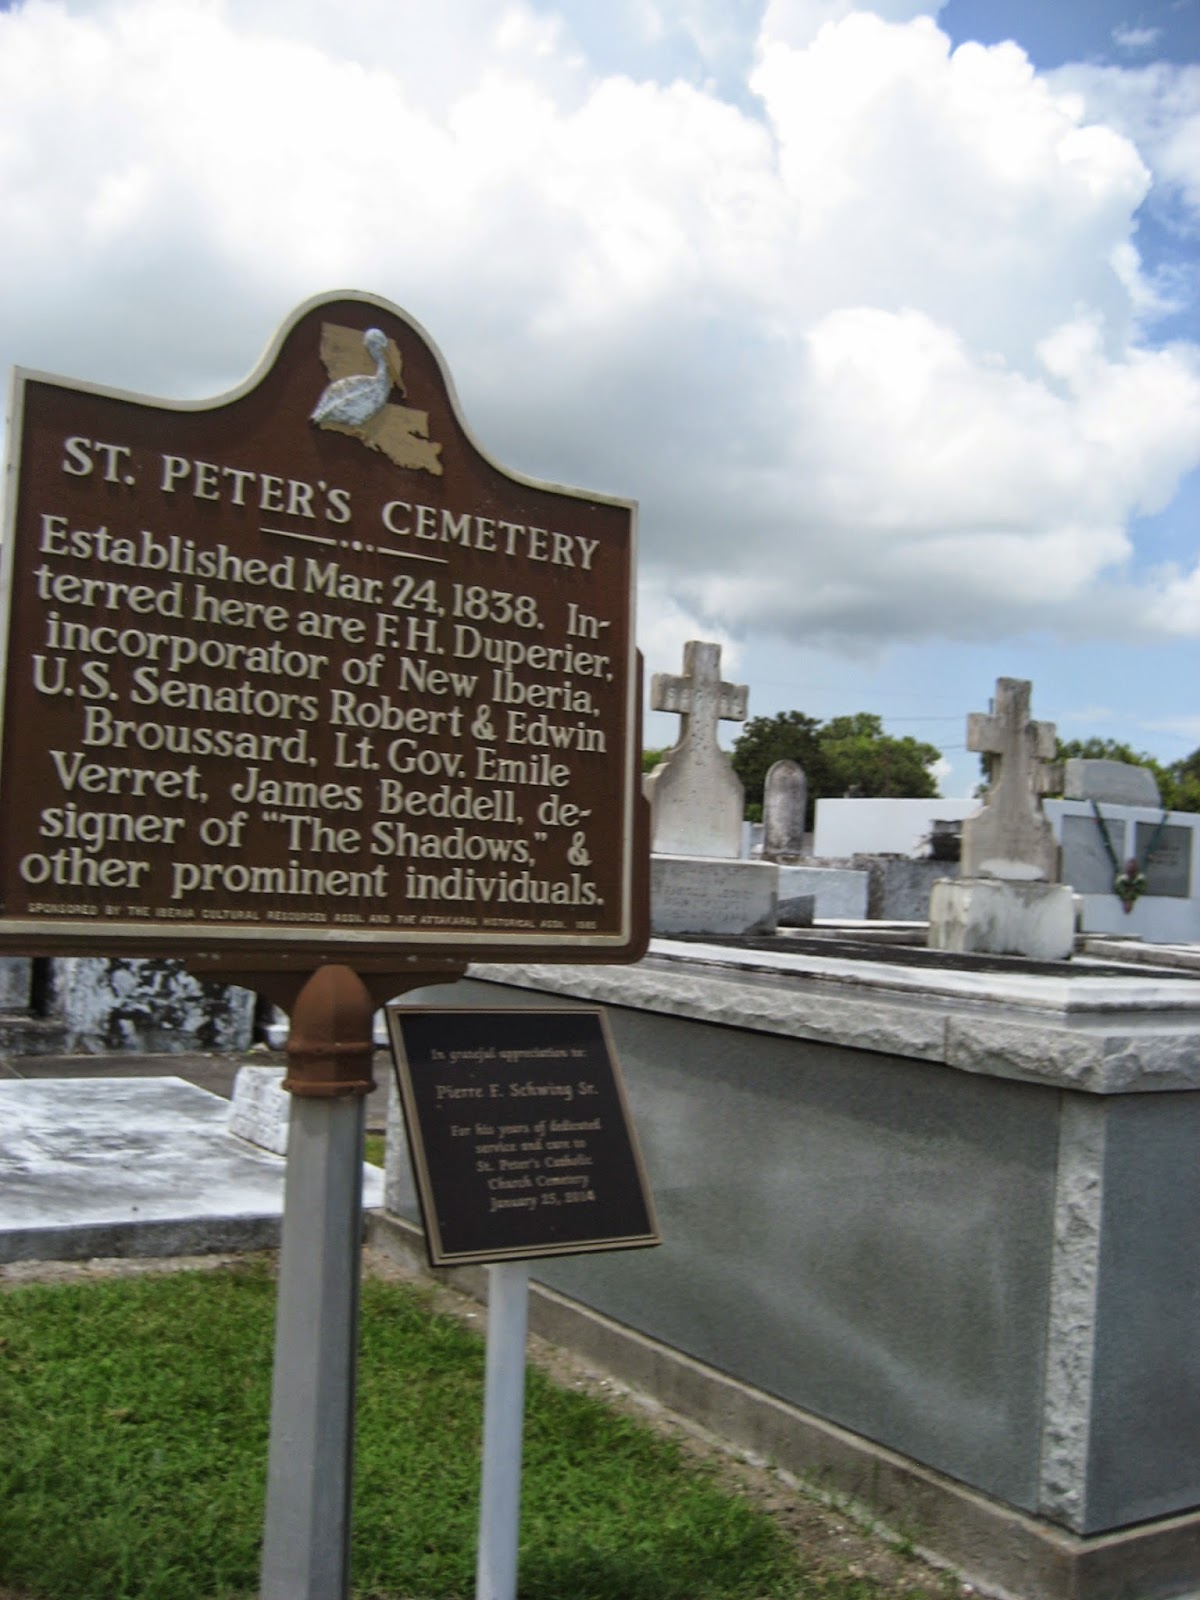 St Peter's Cemetery, New Iberia, Louisiana